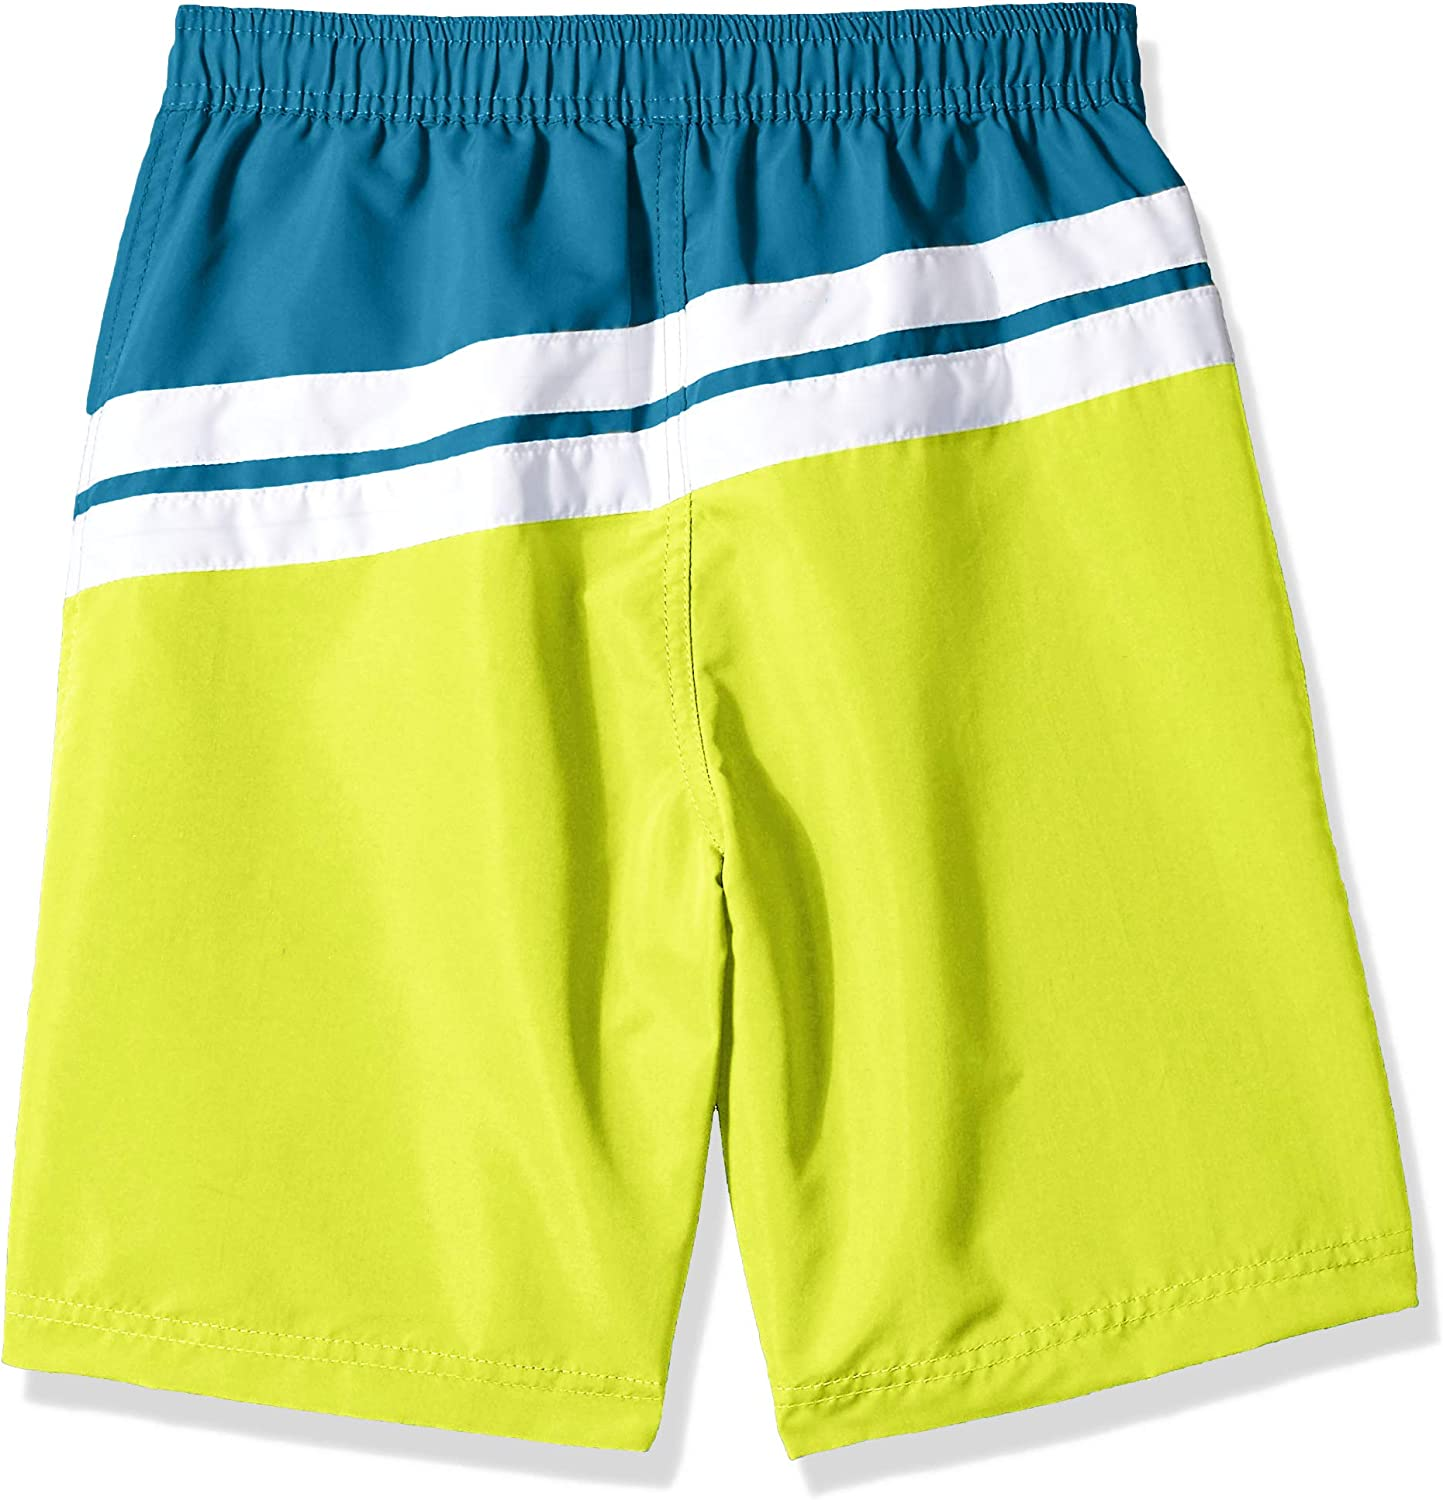 Big Chill Boys Little Printed Swim Trunks